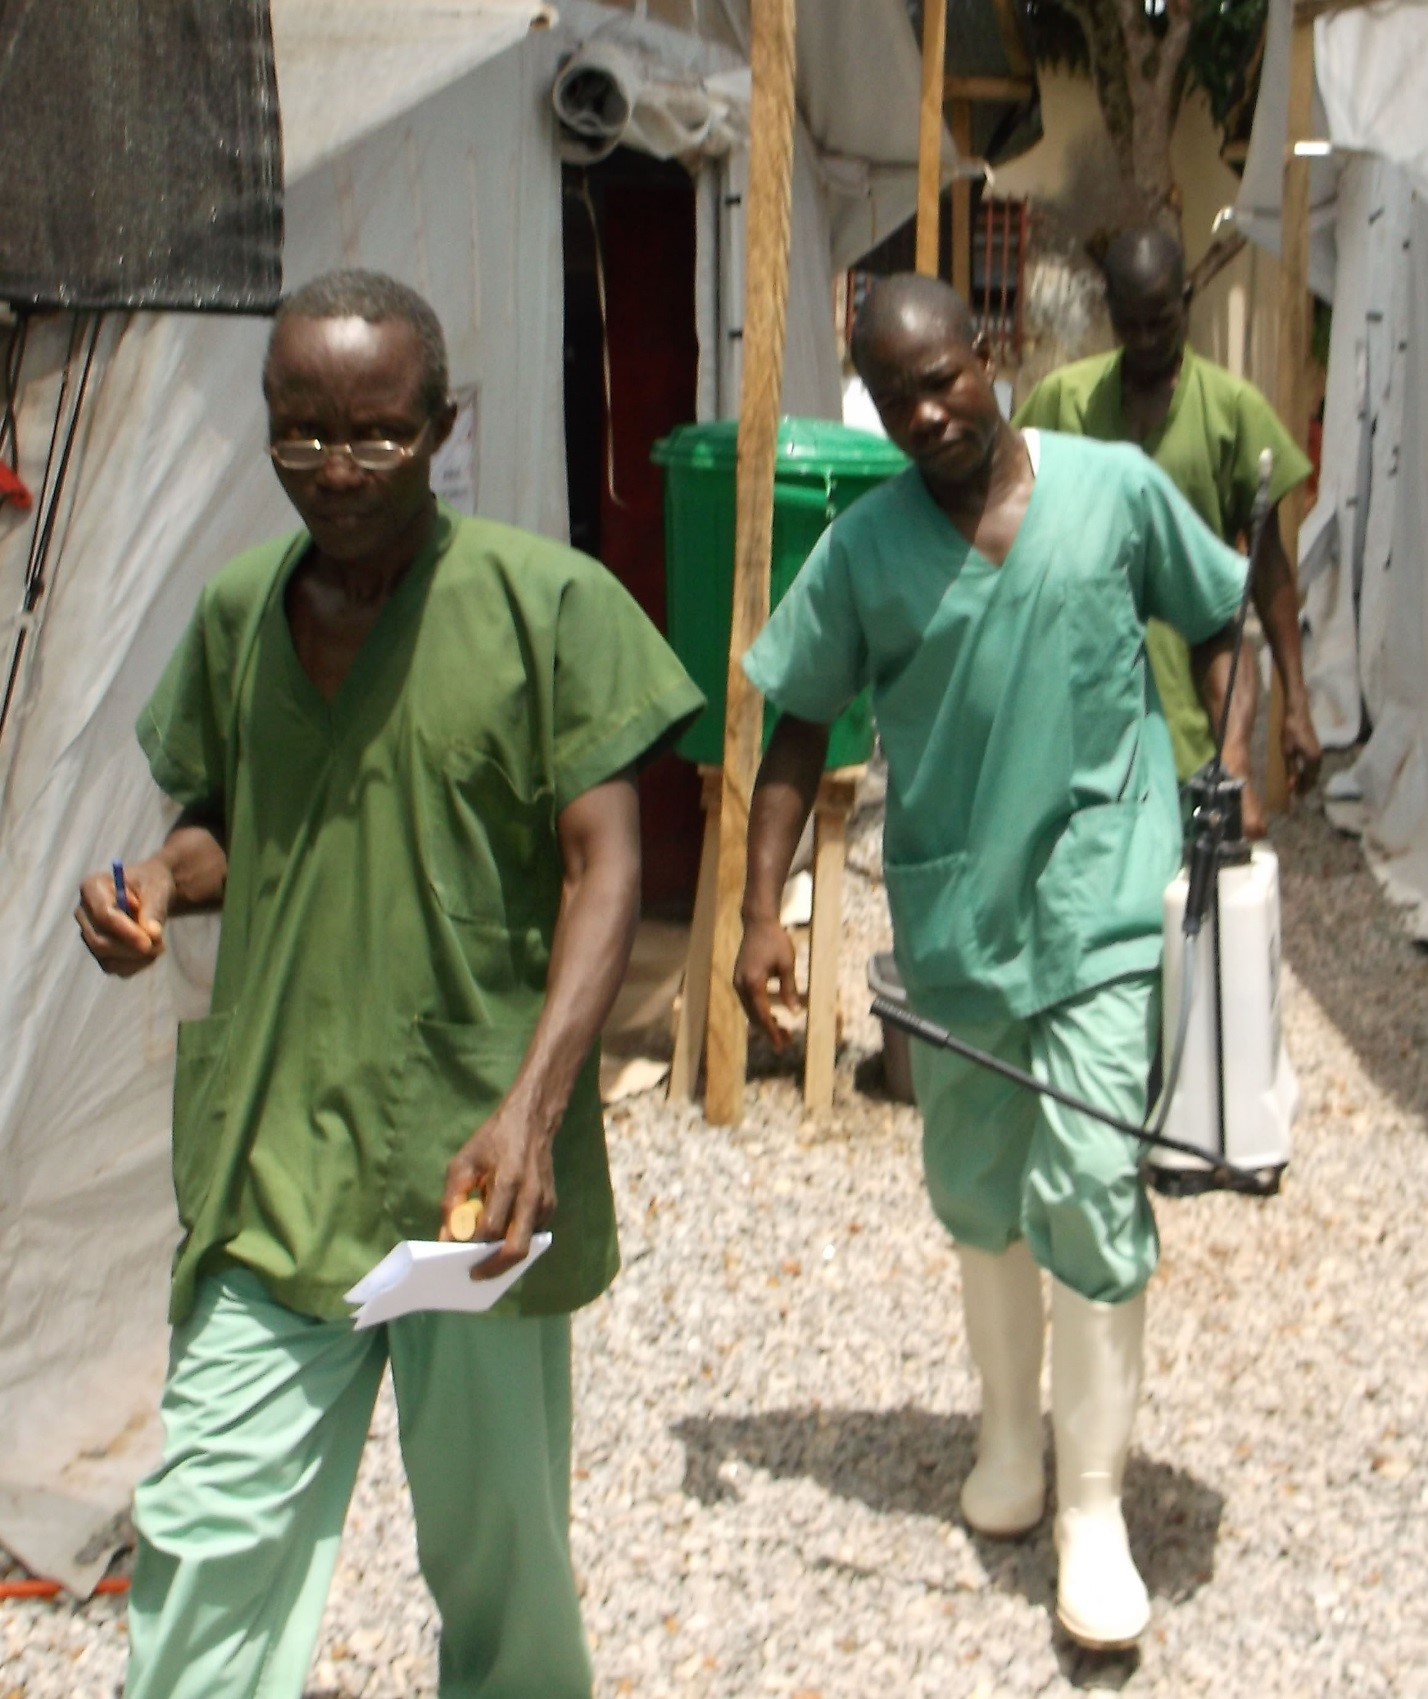 Health care workers at an Ebola treatment unit – NOTE: Image is prohibited for reuse